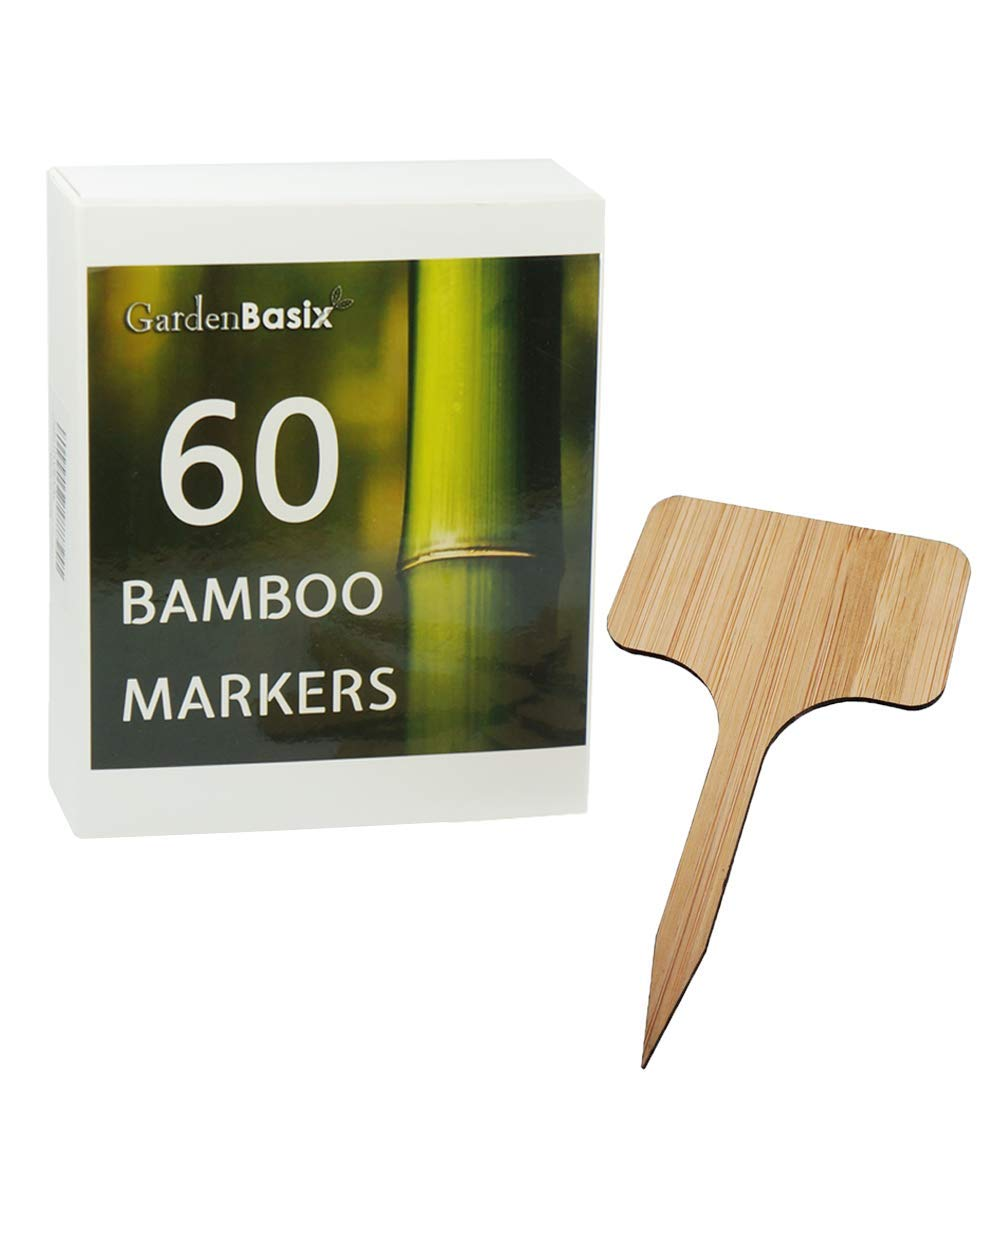 60 Bamboo Garden Plant Labels Herbs Gardening Markers Plant Sign Tags 60pcs 2.4 inch wide 4 inch tall by GardenBasix